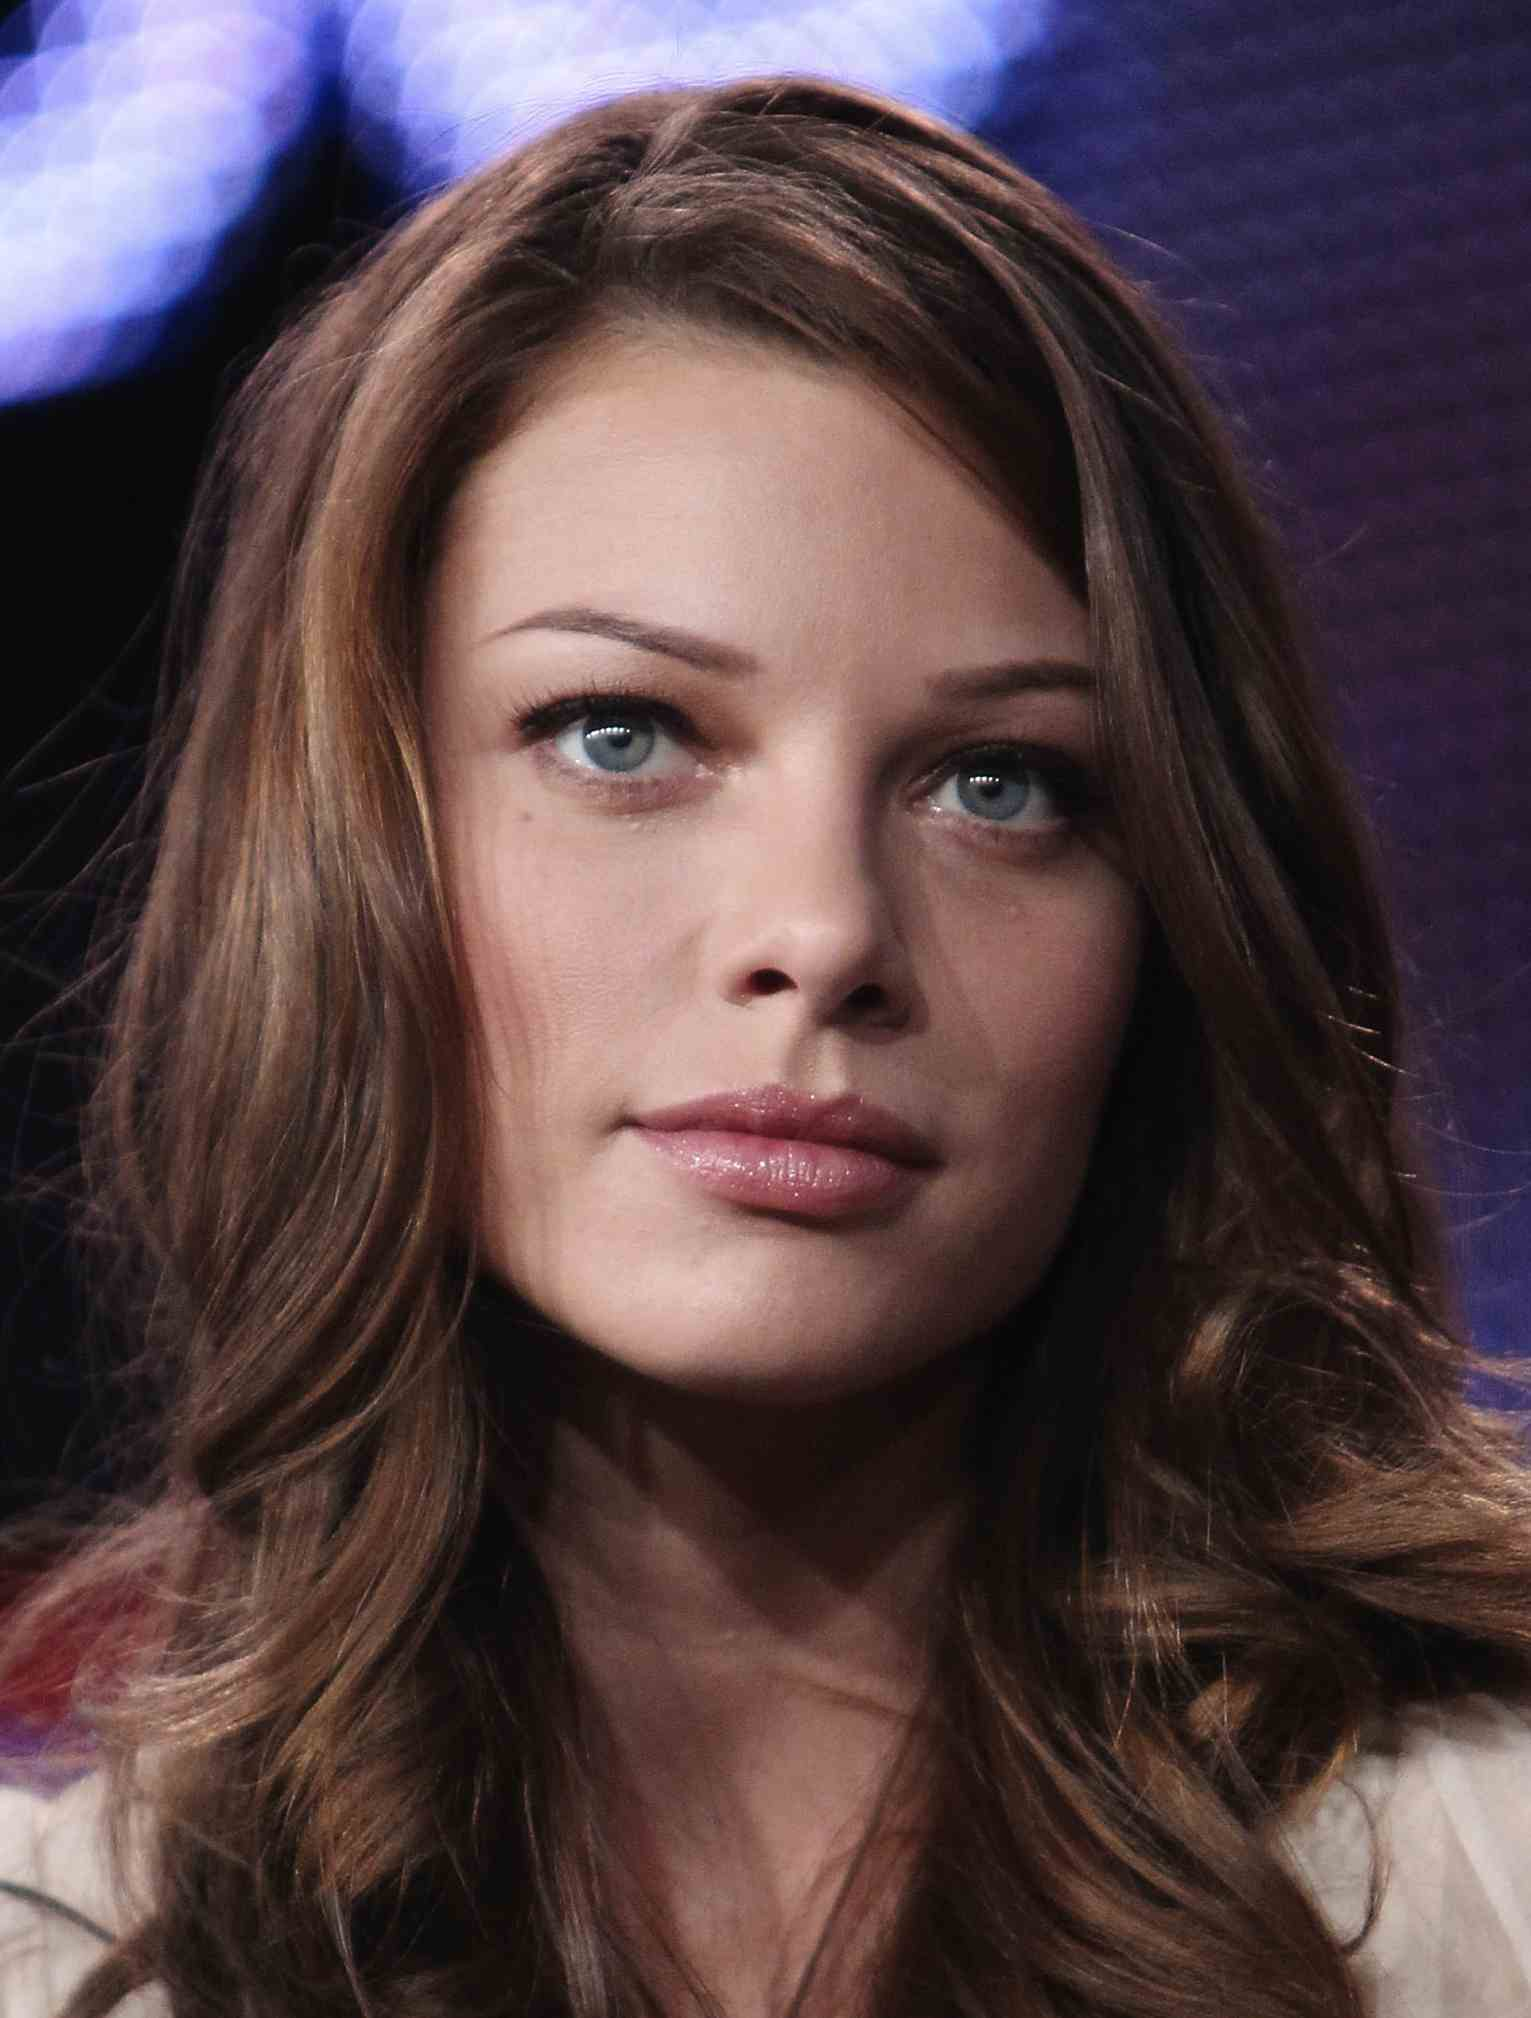 Lauren German Wallpapers High Quality | Download Free Amy Adams Movies